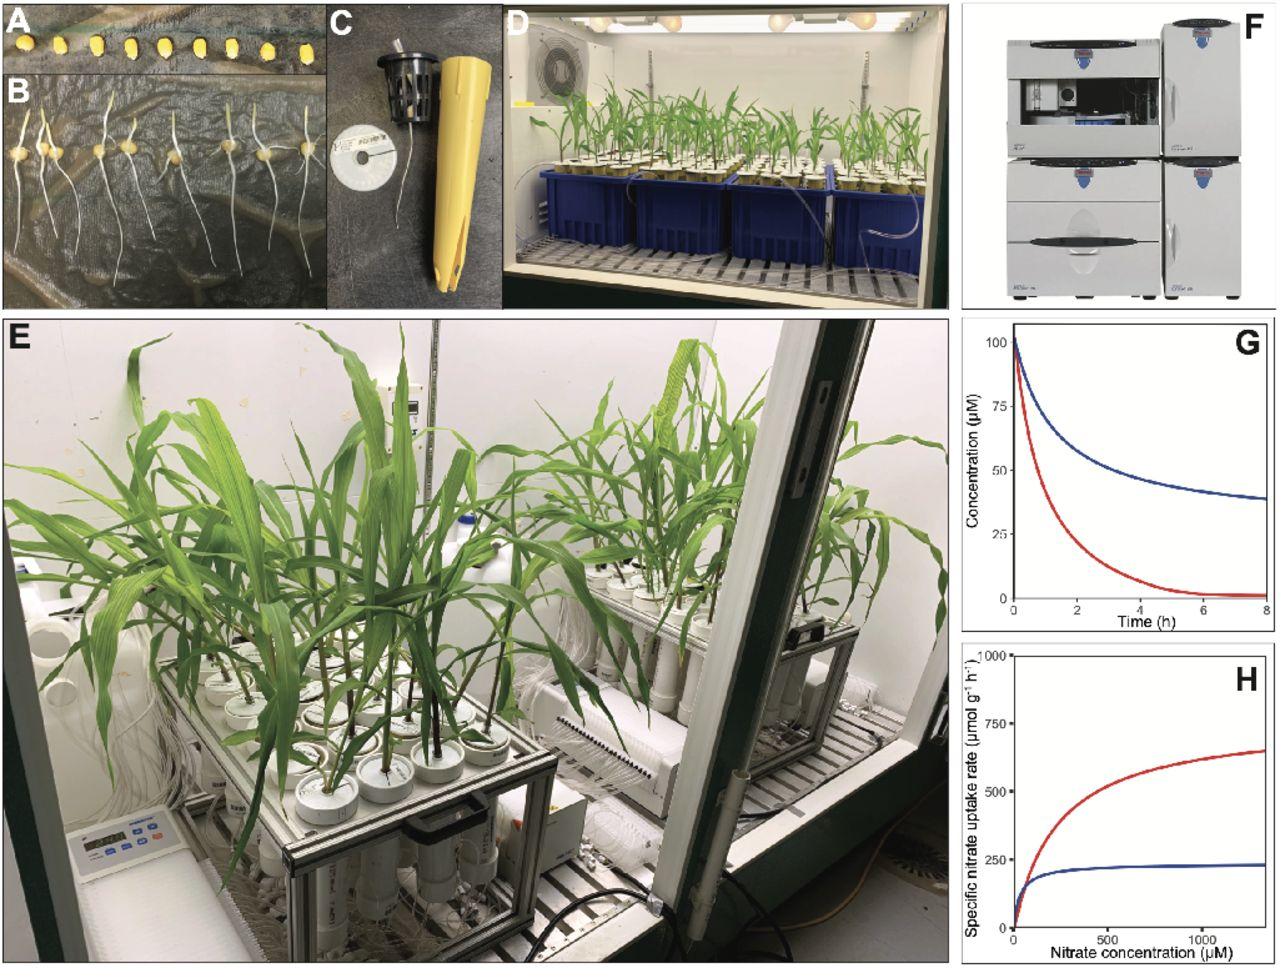 RhizoFlux platform for phenotyping of multiple ion uptake kinetics in plants. (A) Maize seeds are surface sterilized and germinated on germination paper rolls. (B) Evenly germinated seedlings are transferred to (C) seedling cones and grown in (D) aerated hydroponics for 14 days. (E) Plants are transferred to a custom ion uptake setup consisting of 24 hydroponic chambers connected to two <t>24-channel</t> peristaltic pumps for simultaneous solution loading, aeration, and sampling onto a collection plate. (F) Ion concentrations of collected nutrient samples are determined using ion chromatography (G) for quantifying ion depletion across time and (H) used to calculate net specific ion uptake rates on a root length or mass basis.